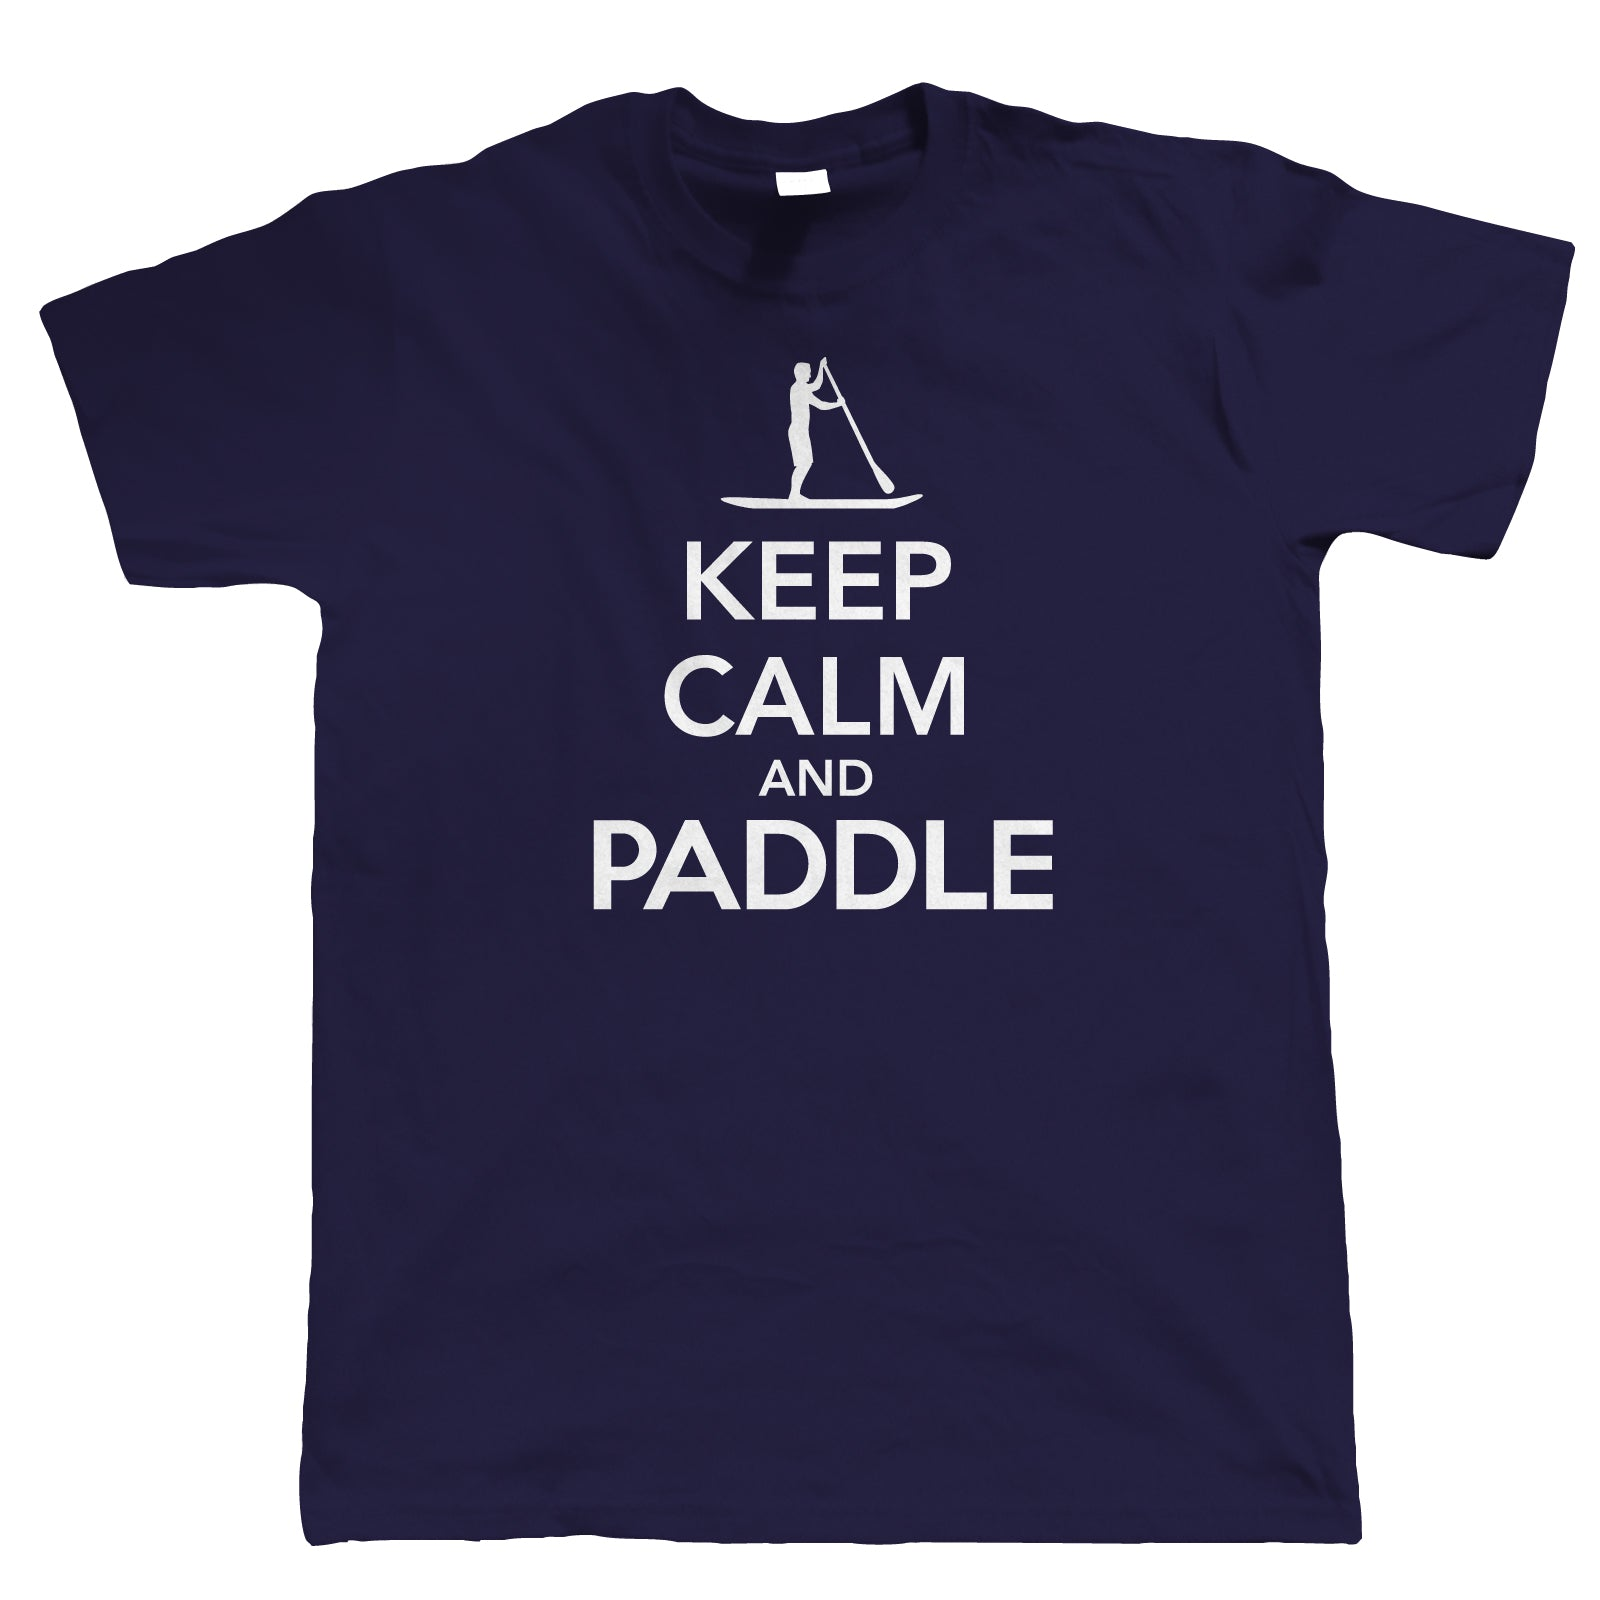 Keep Calm & Paddle, Mens T Shirt